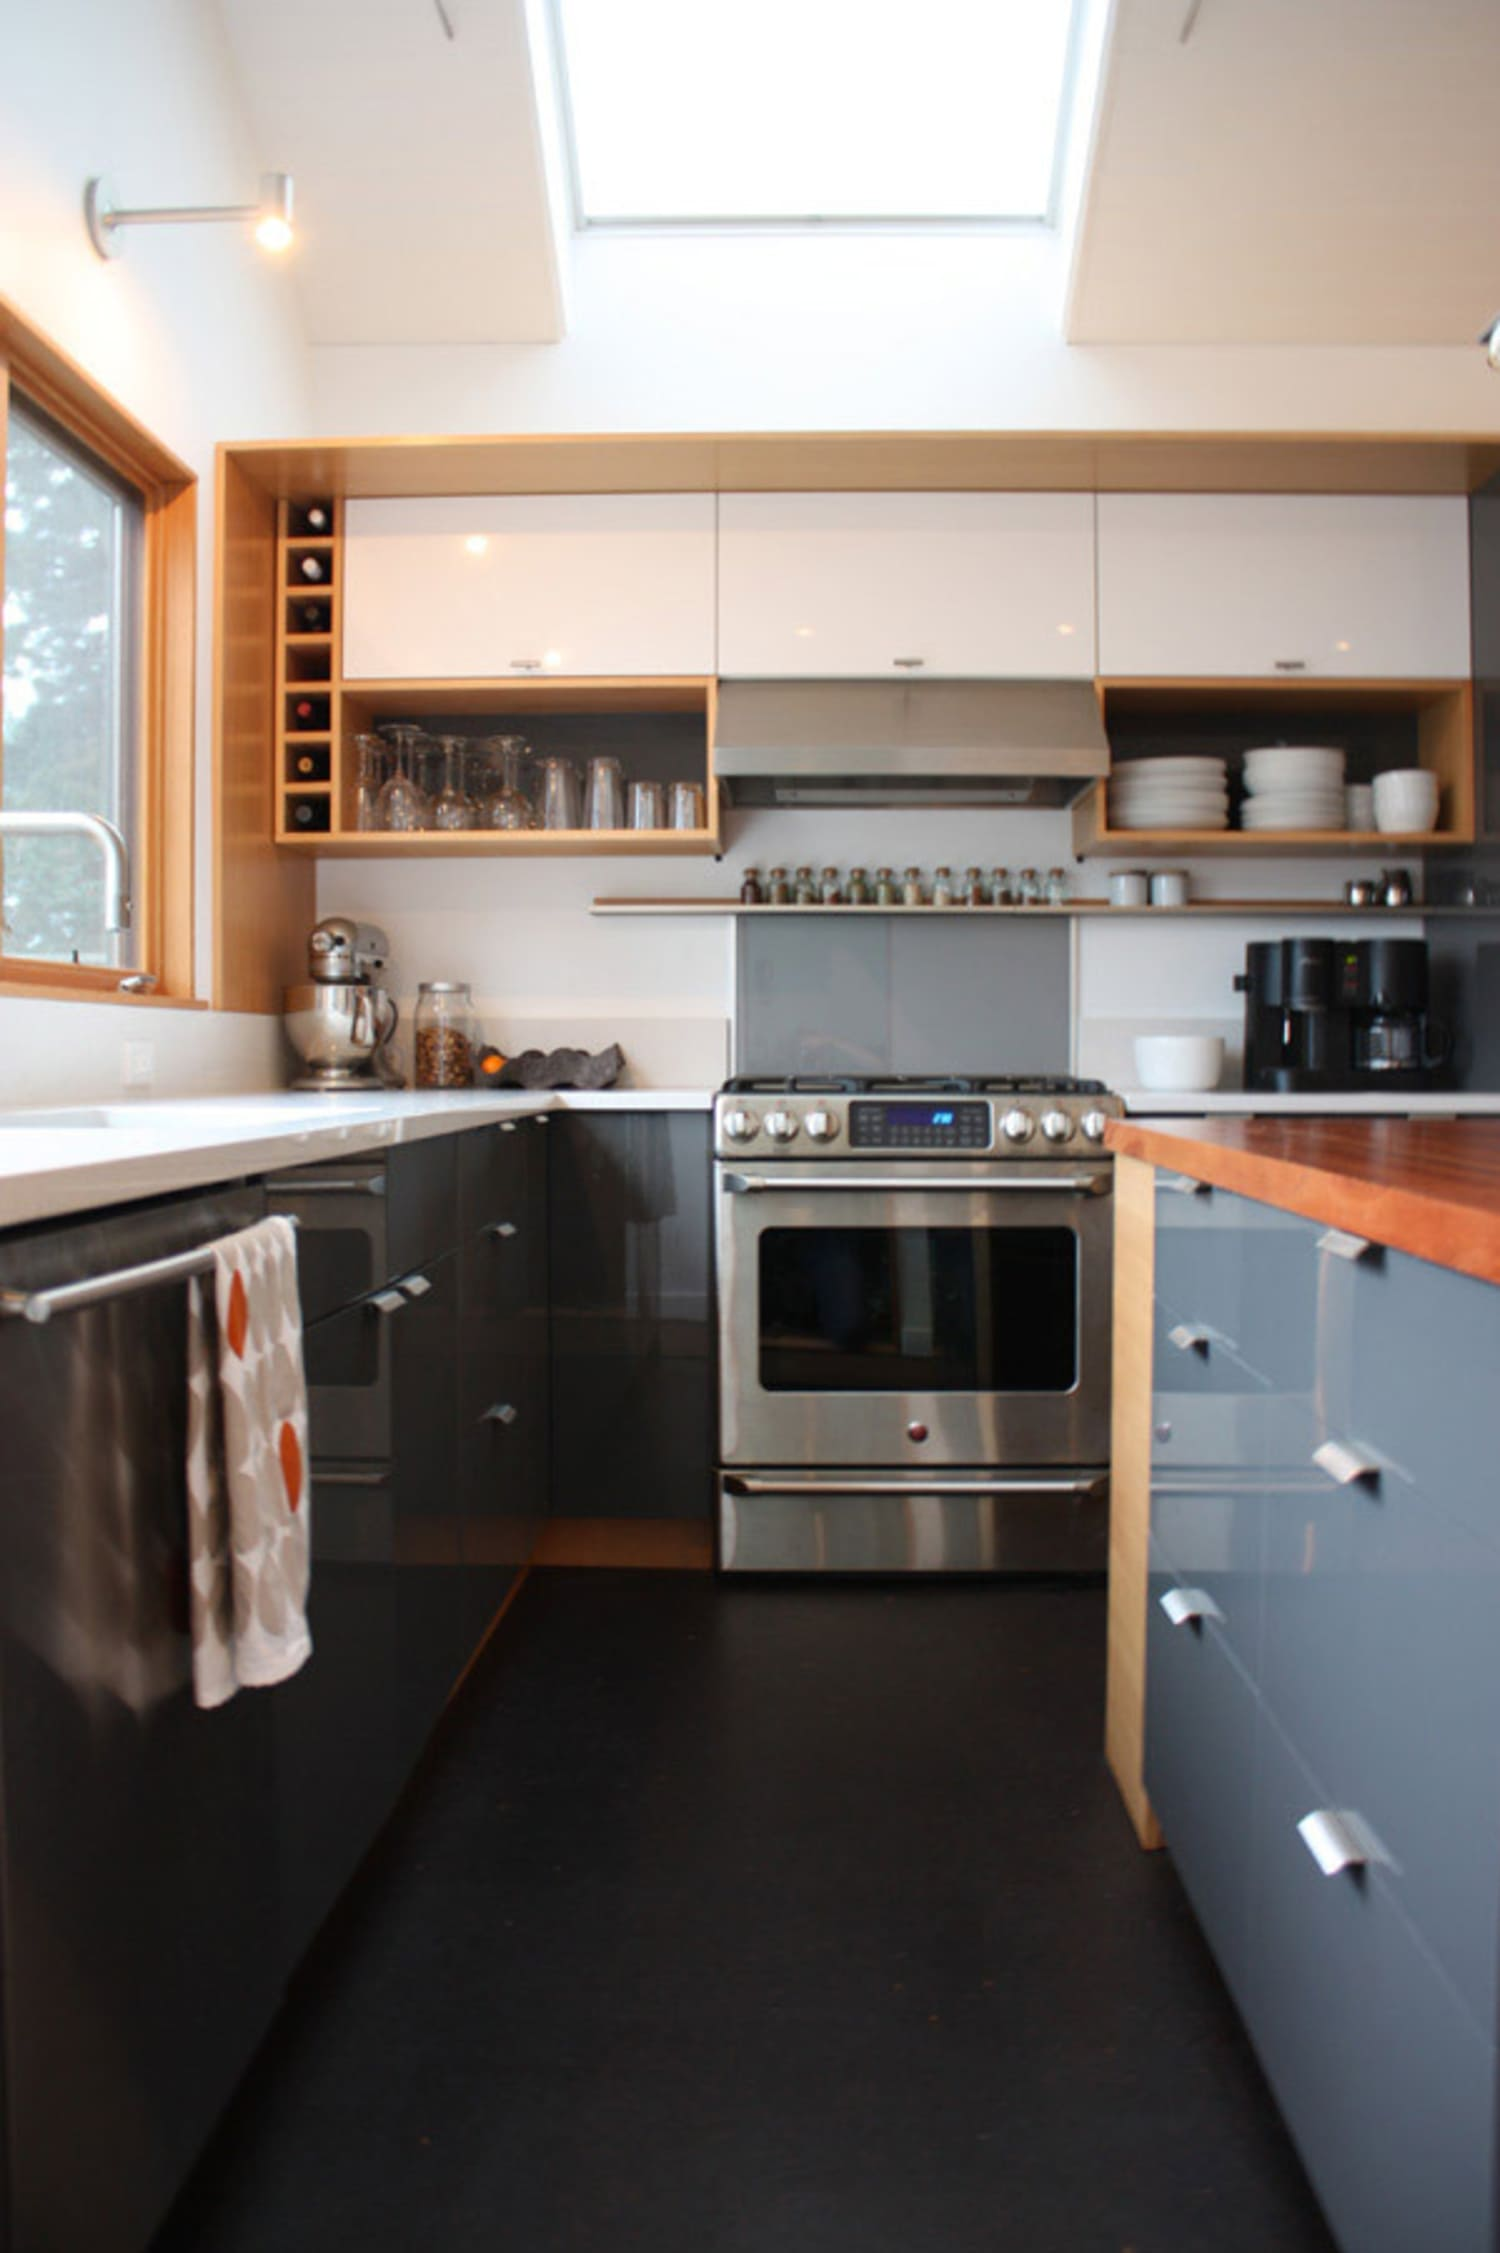 20 Reasons We Love IKEA Kitchens